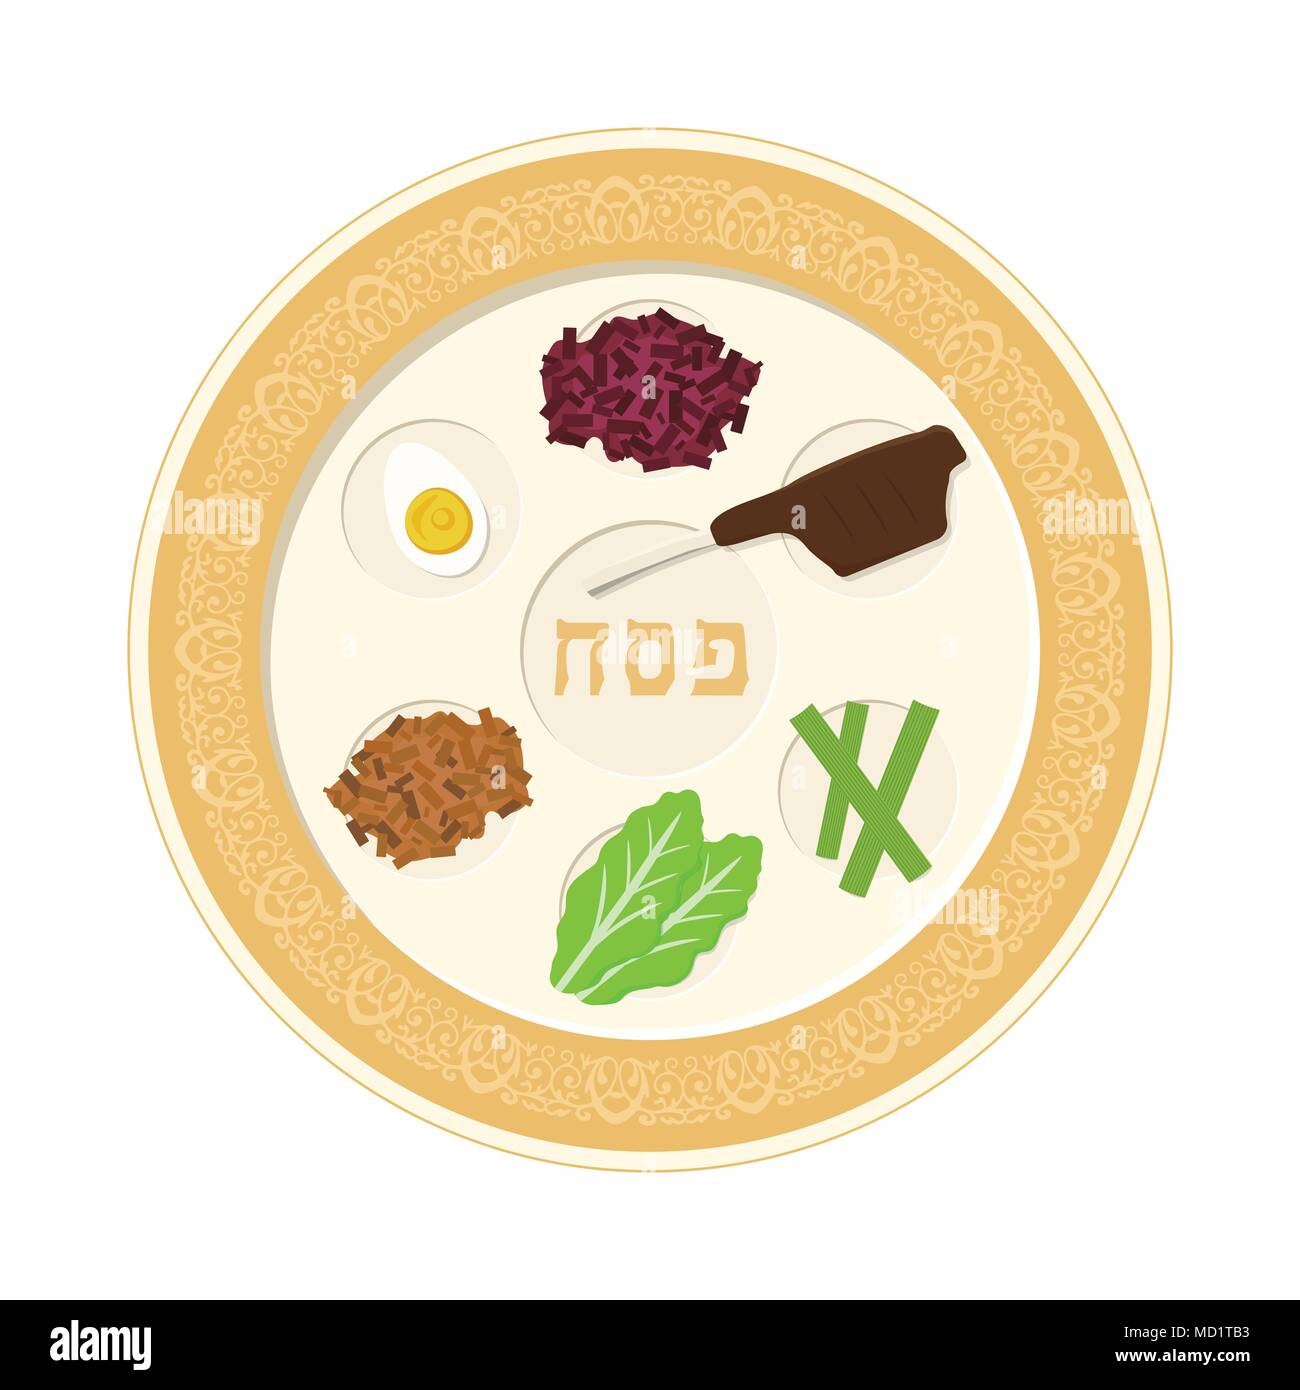 Passover holiday seder plate flat design icon. - Stock Image